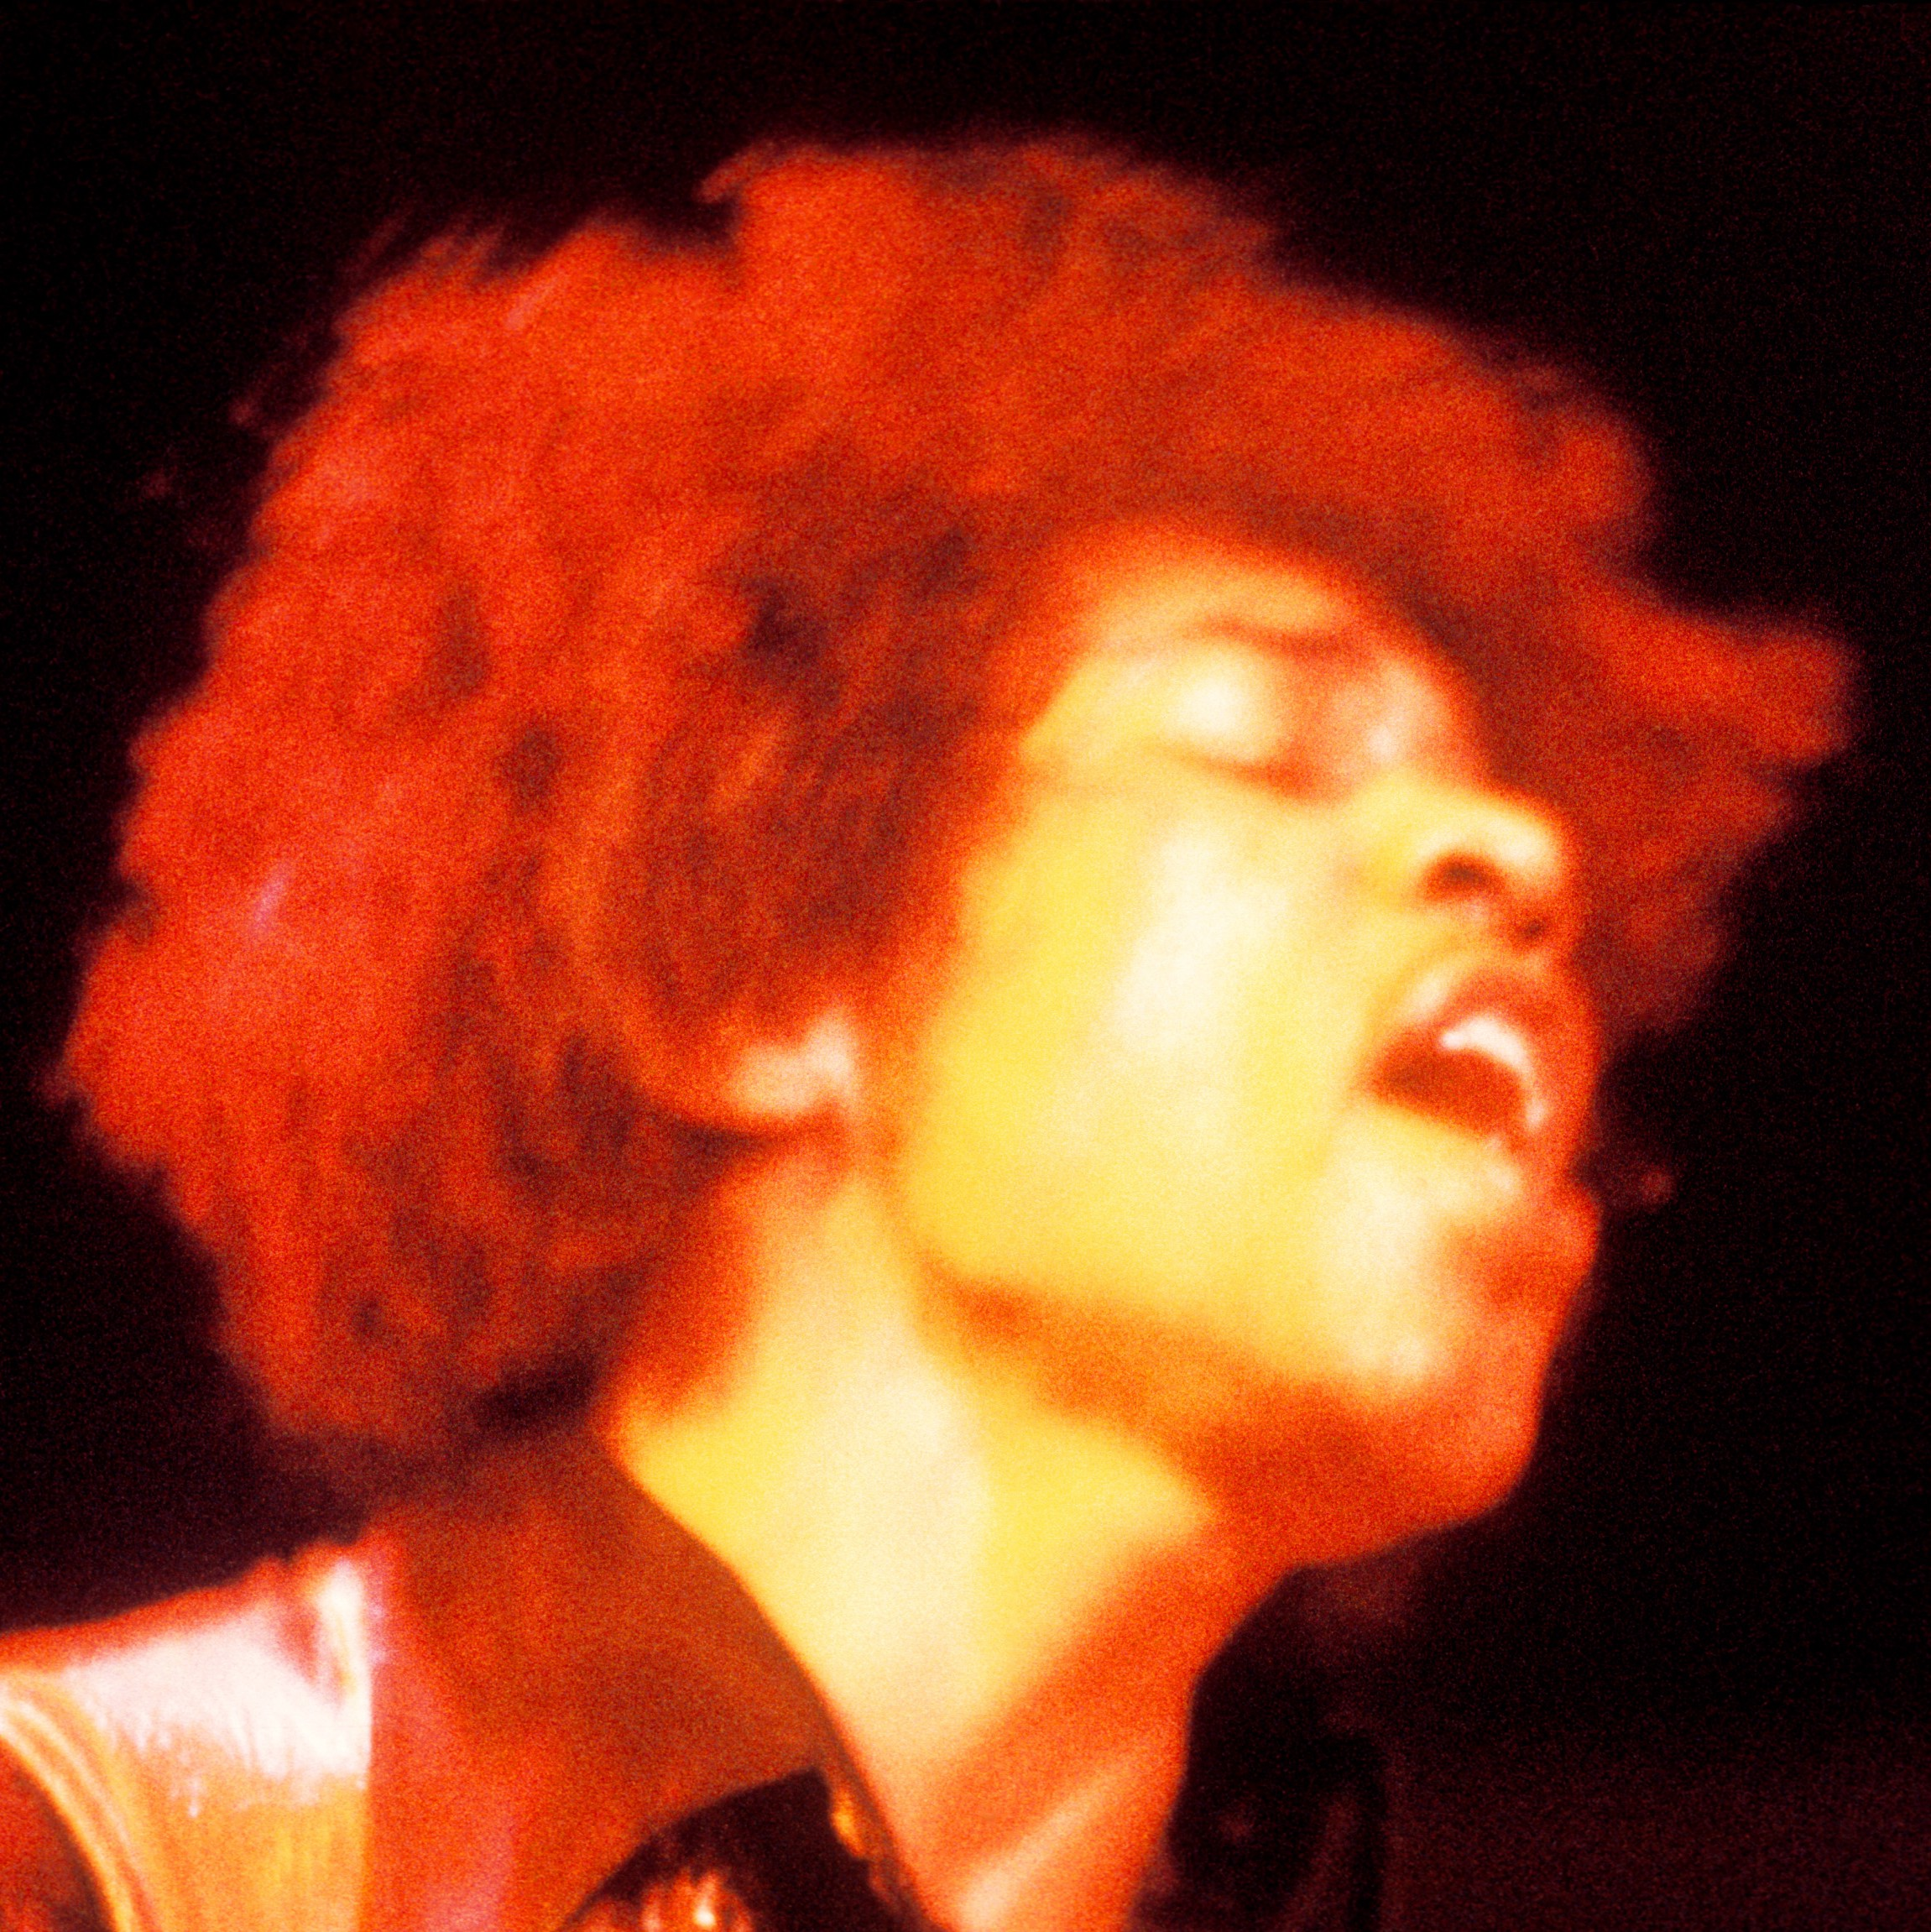 It's been 50 years since Hendrix's 'Electric Ladyland' blew our minds